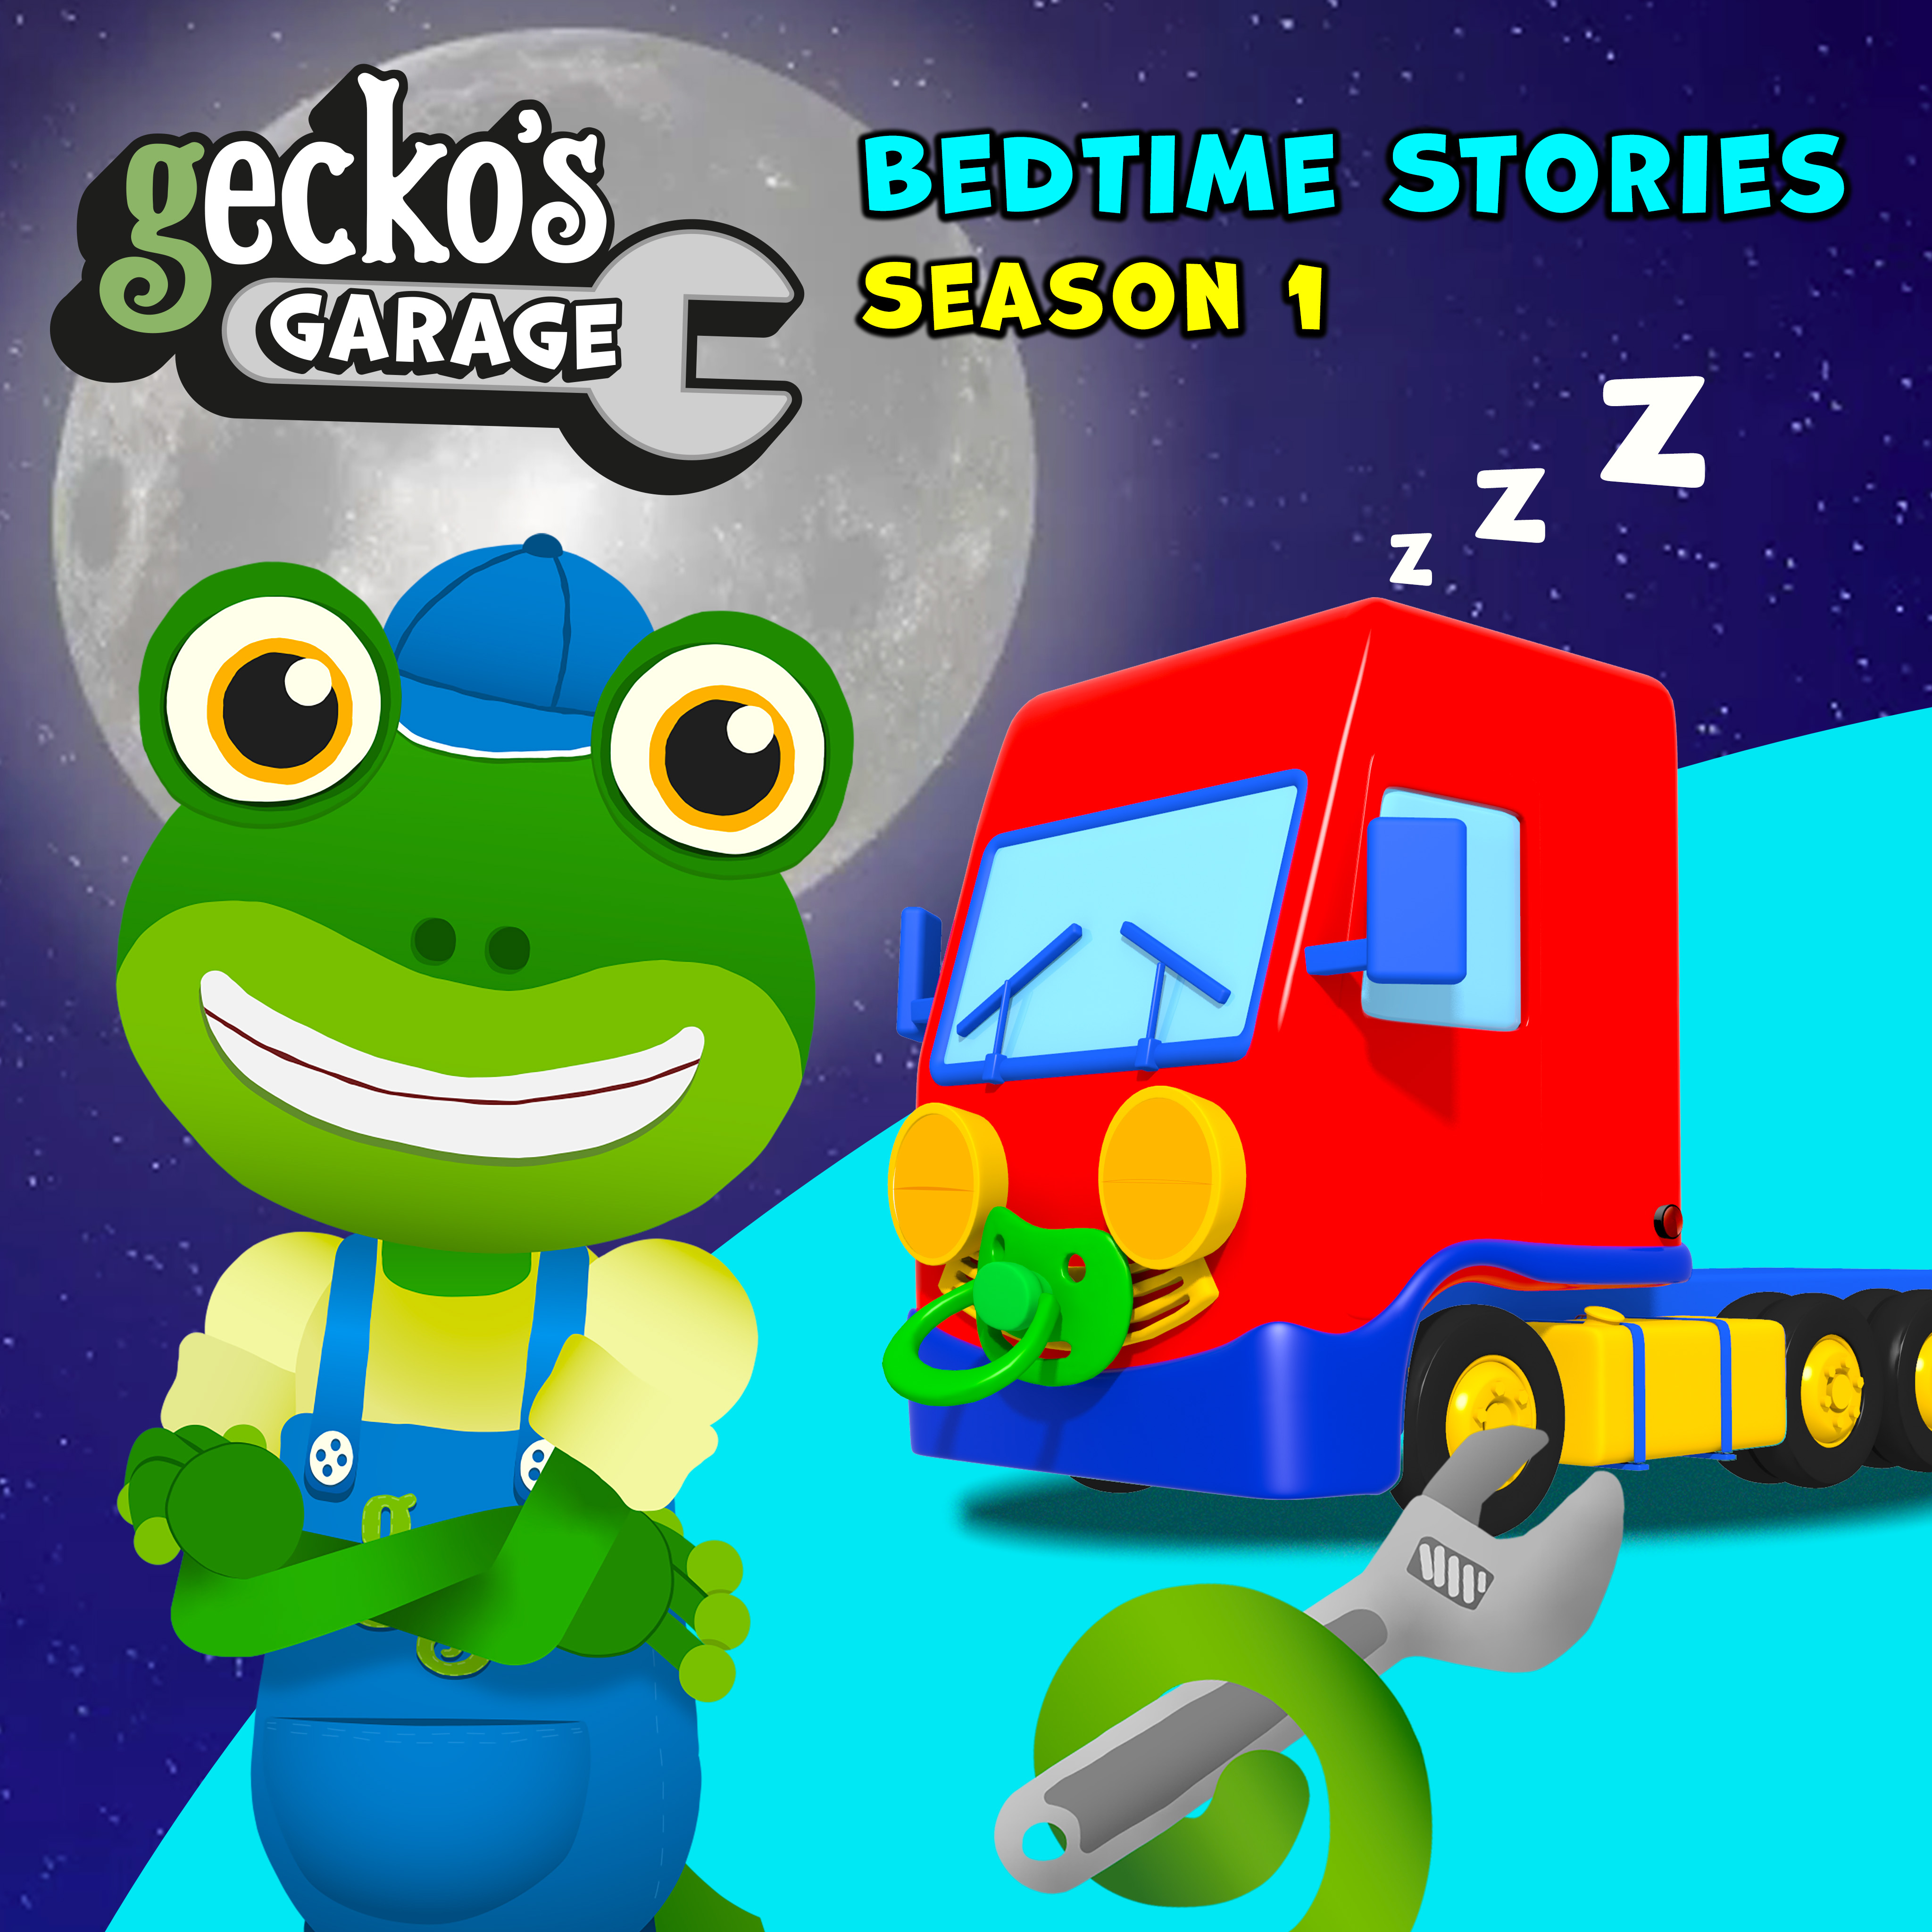 Gecko's Garage Bedtime Stories Season 1